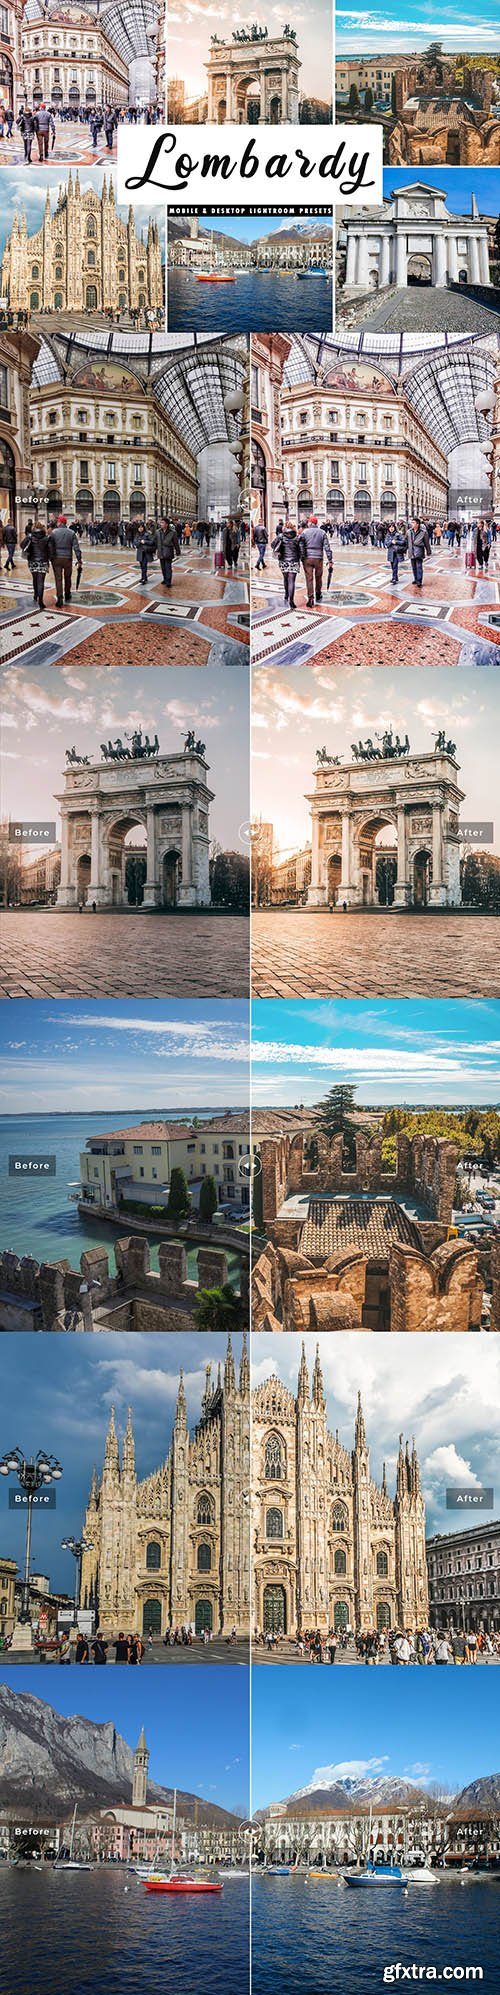 CreativeMarket - Lombardy Lightroom Presets Pack 4508559